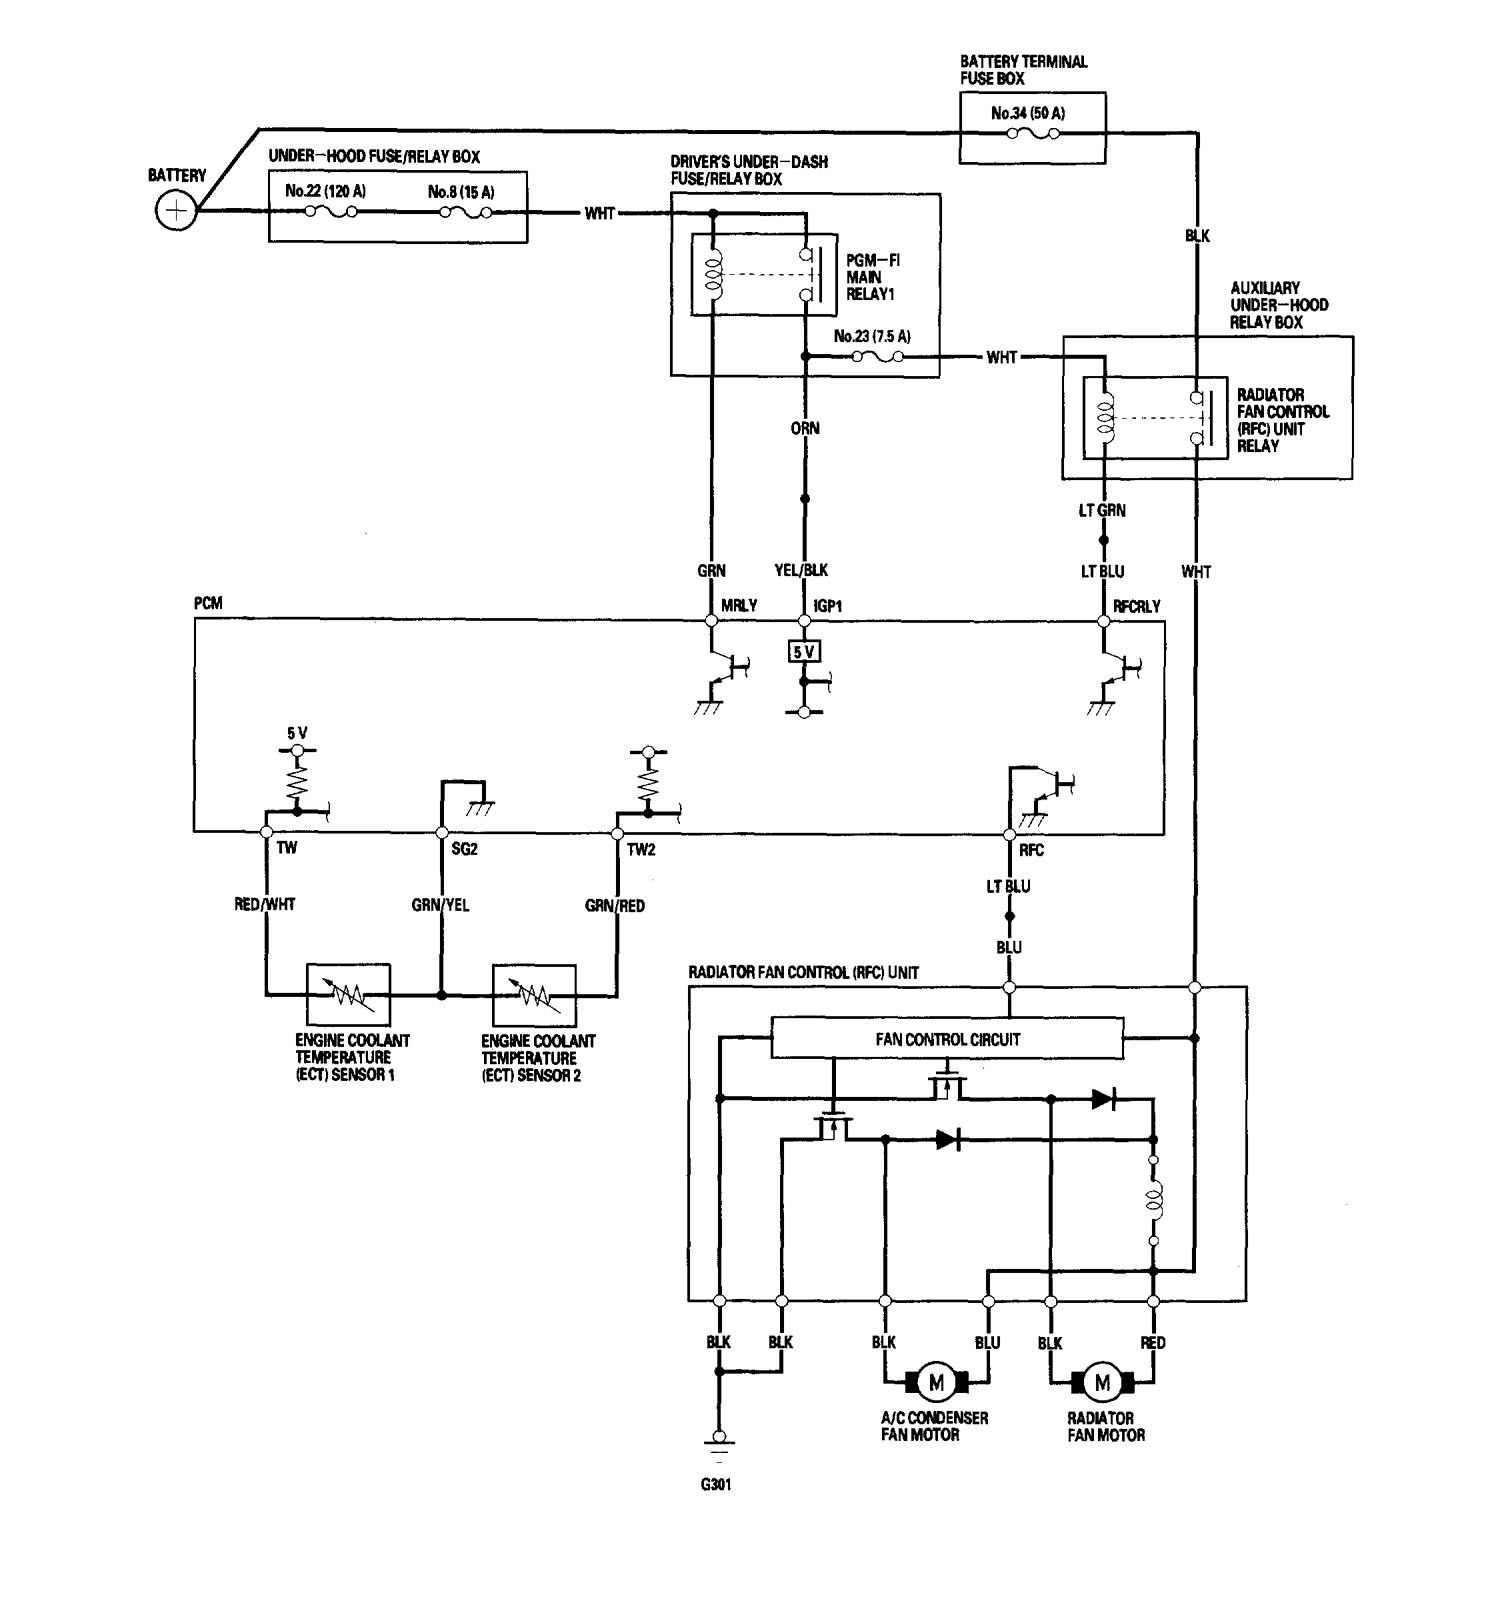 Acura Rl 2006 Wiring Diagrams Cooling Fans Carknowledge Engine Diagram